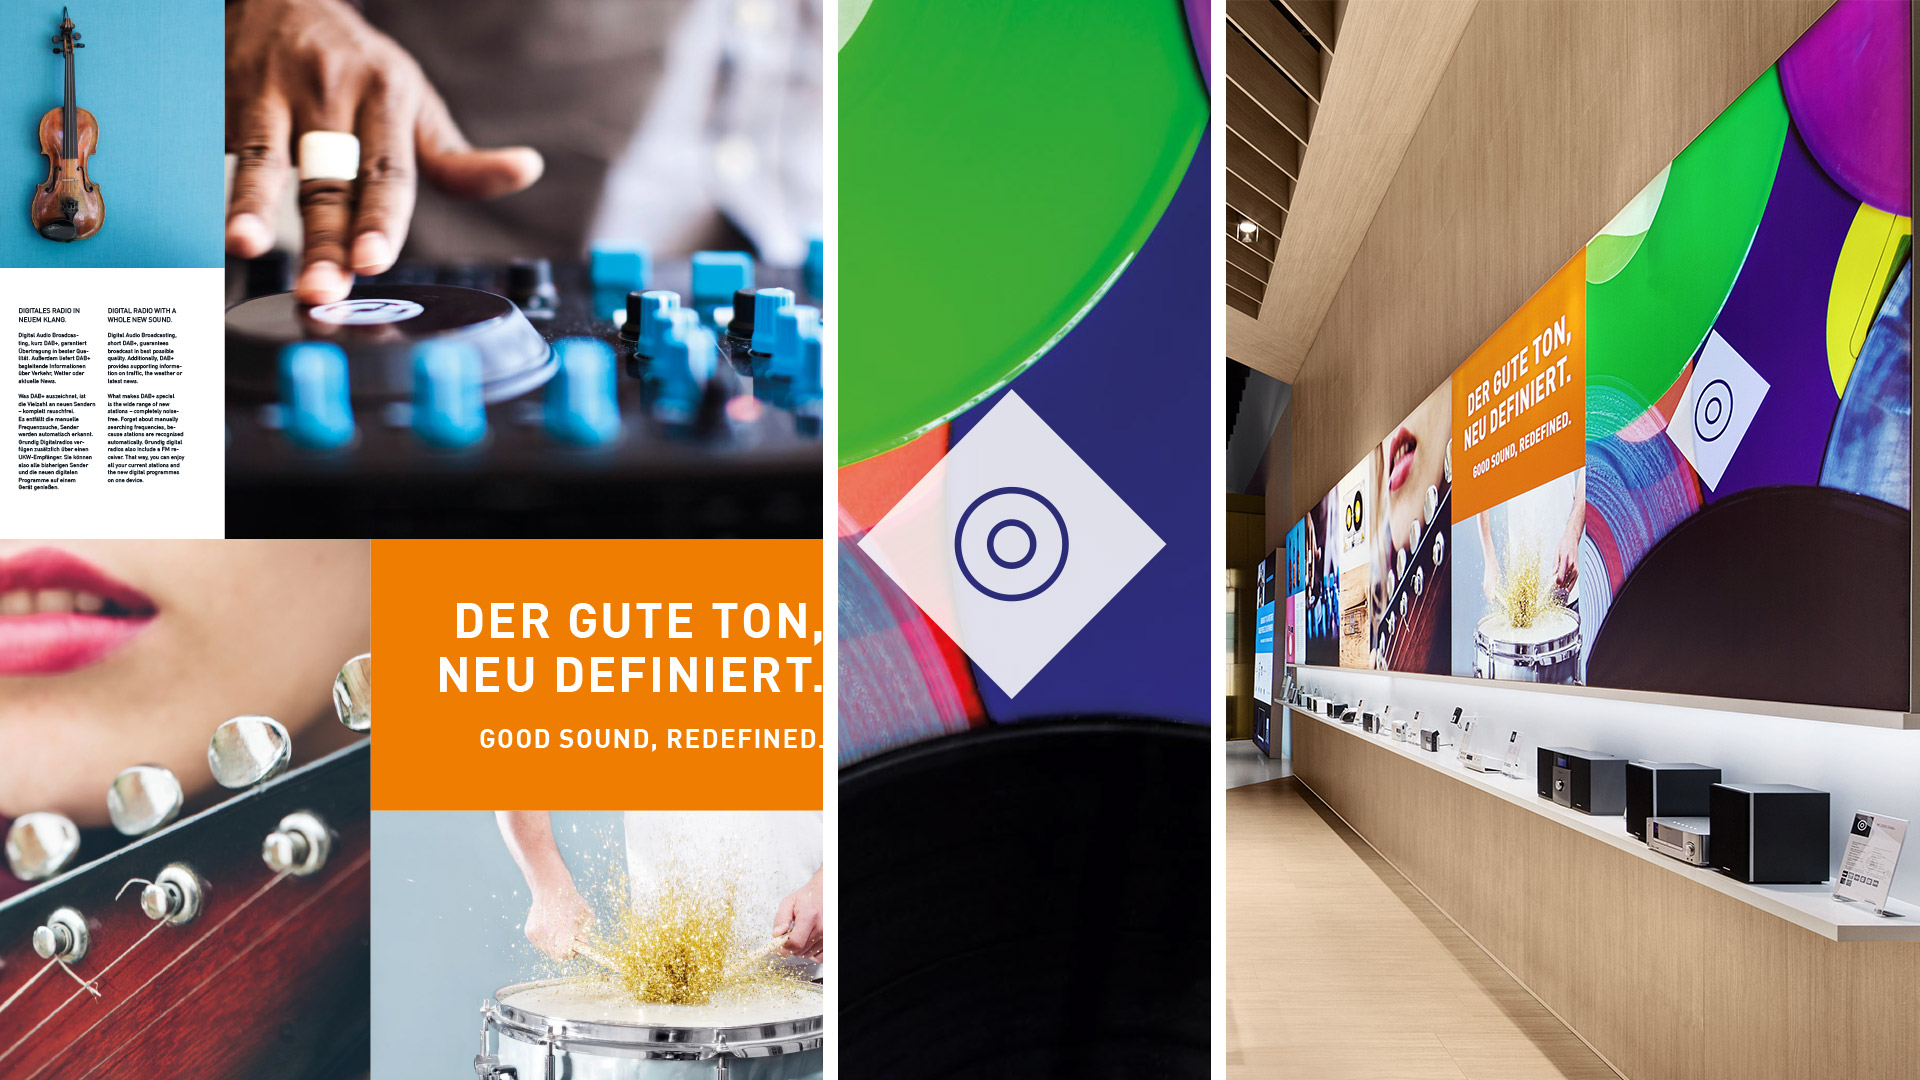 Dart stages Grundig's communication for the IFA 2015